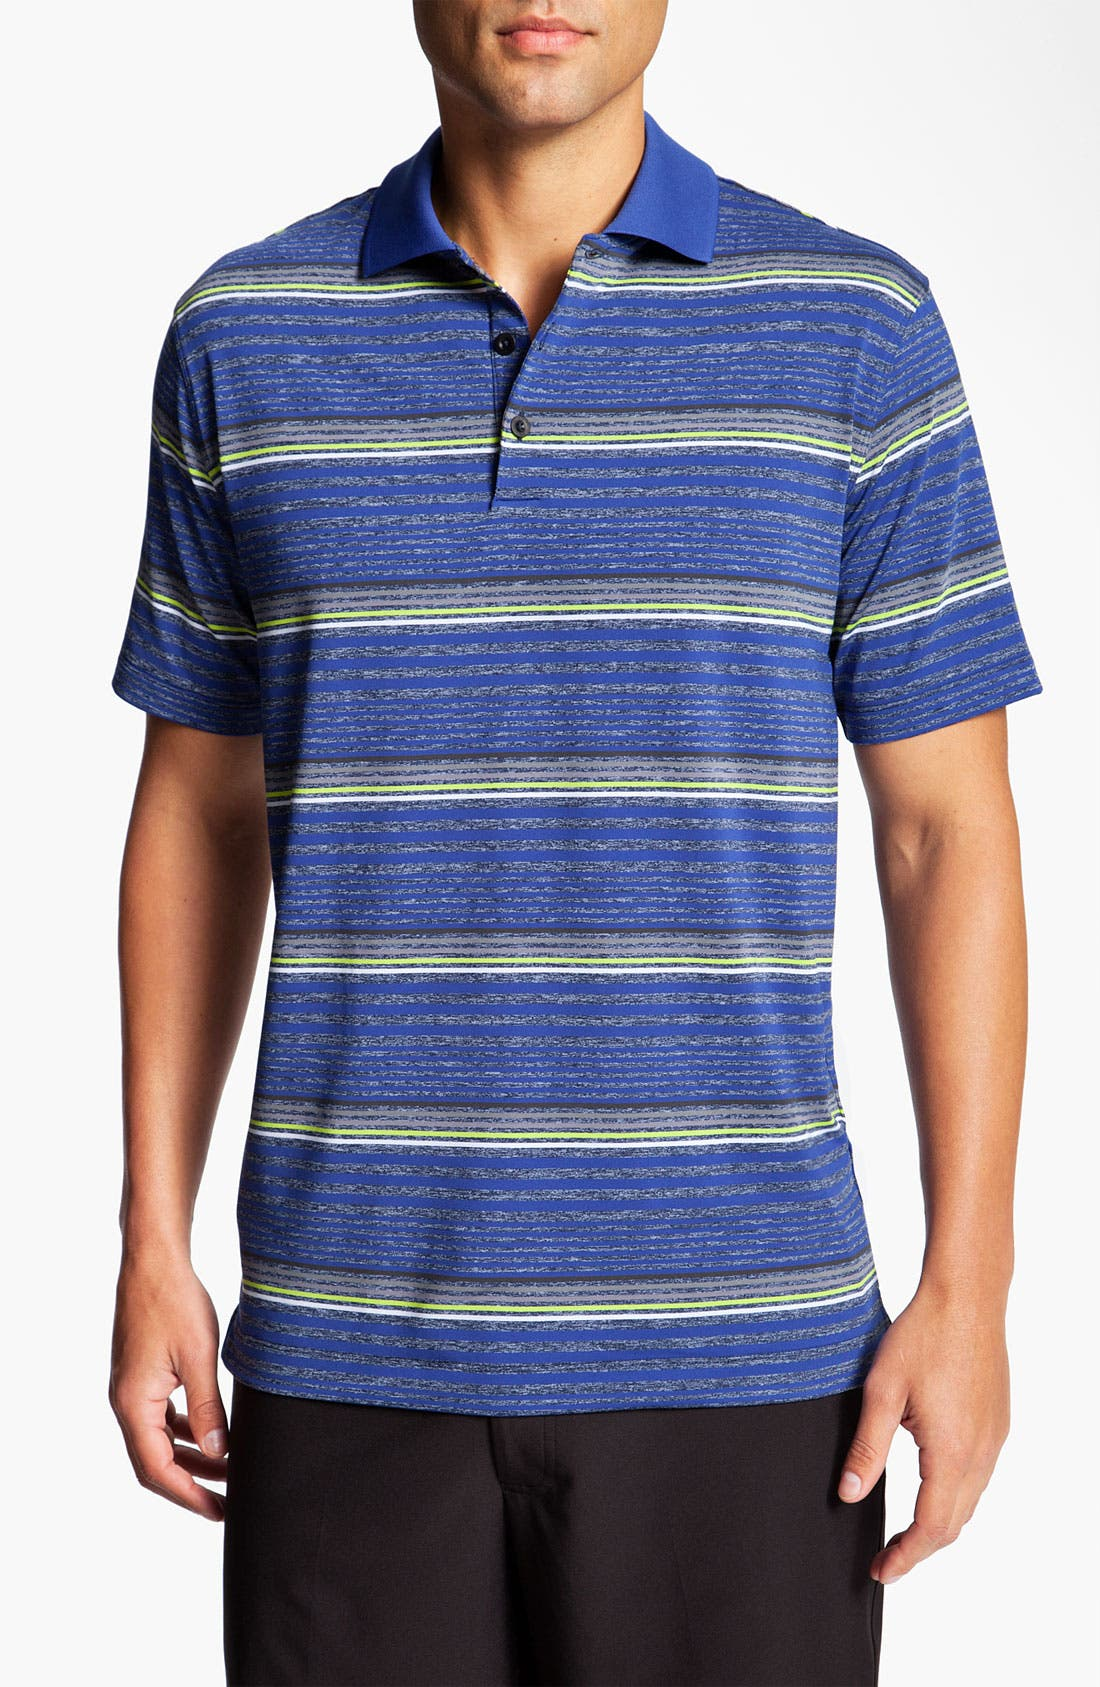 Alternate Image 1 Selected - Nike Golf 'Fashion Stripe' Dri-FIT Polo